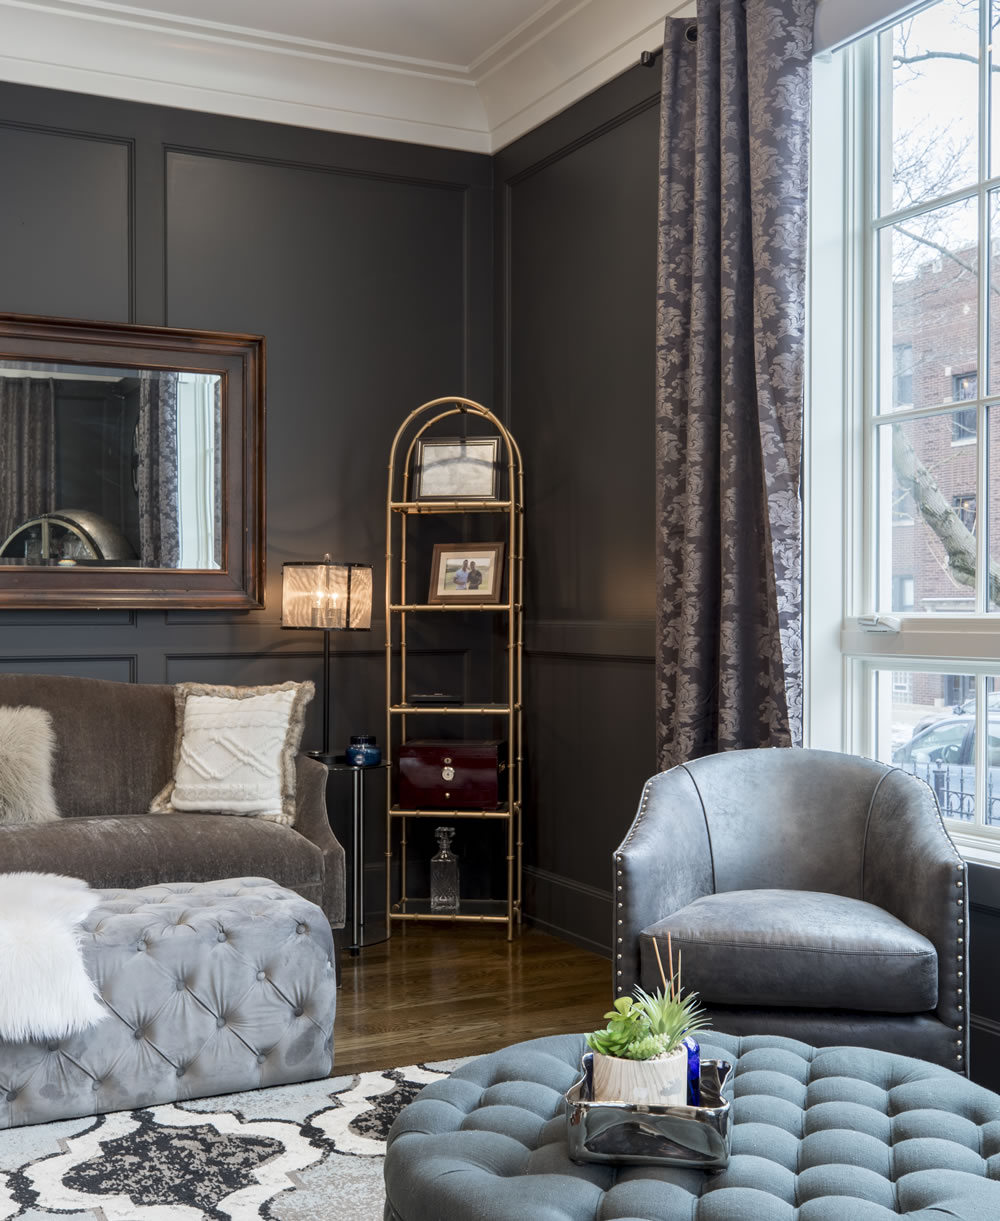 vacant-gray-leather-tub-chair-in-room-2343468